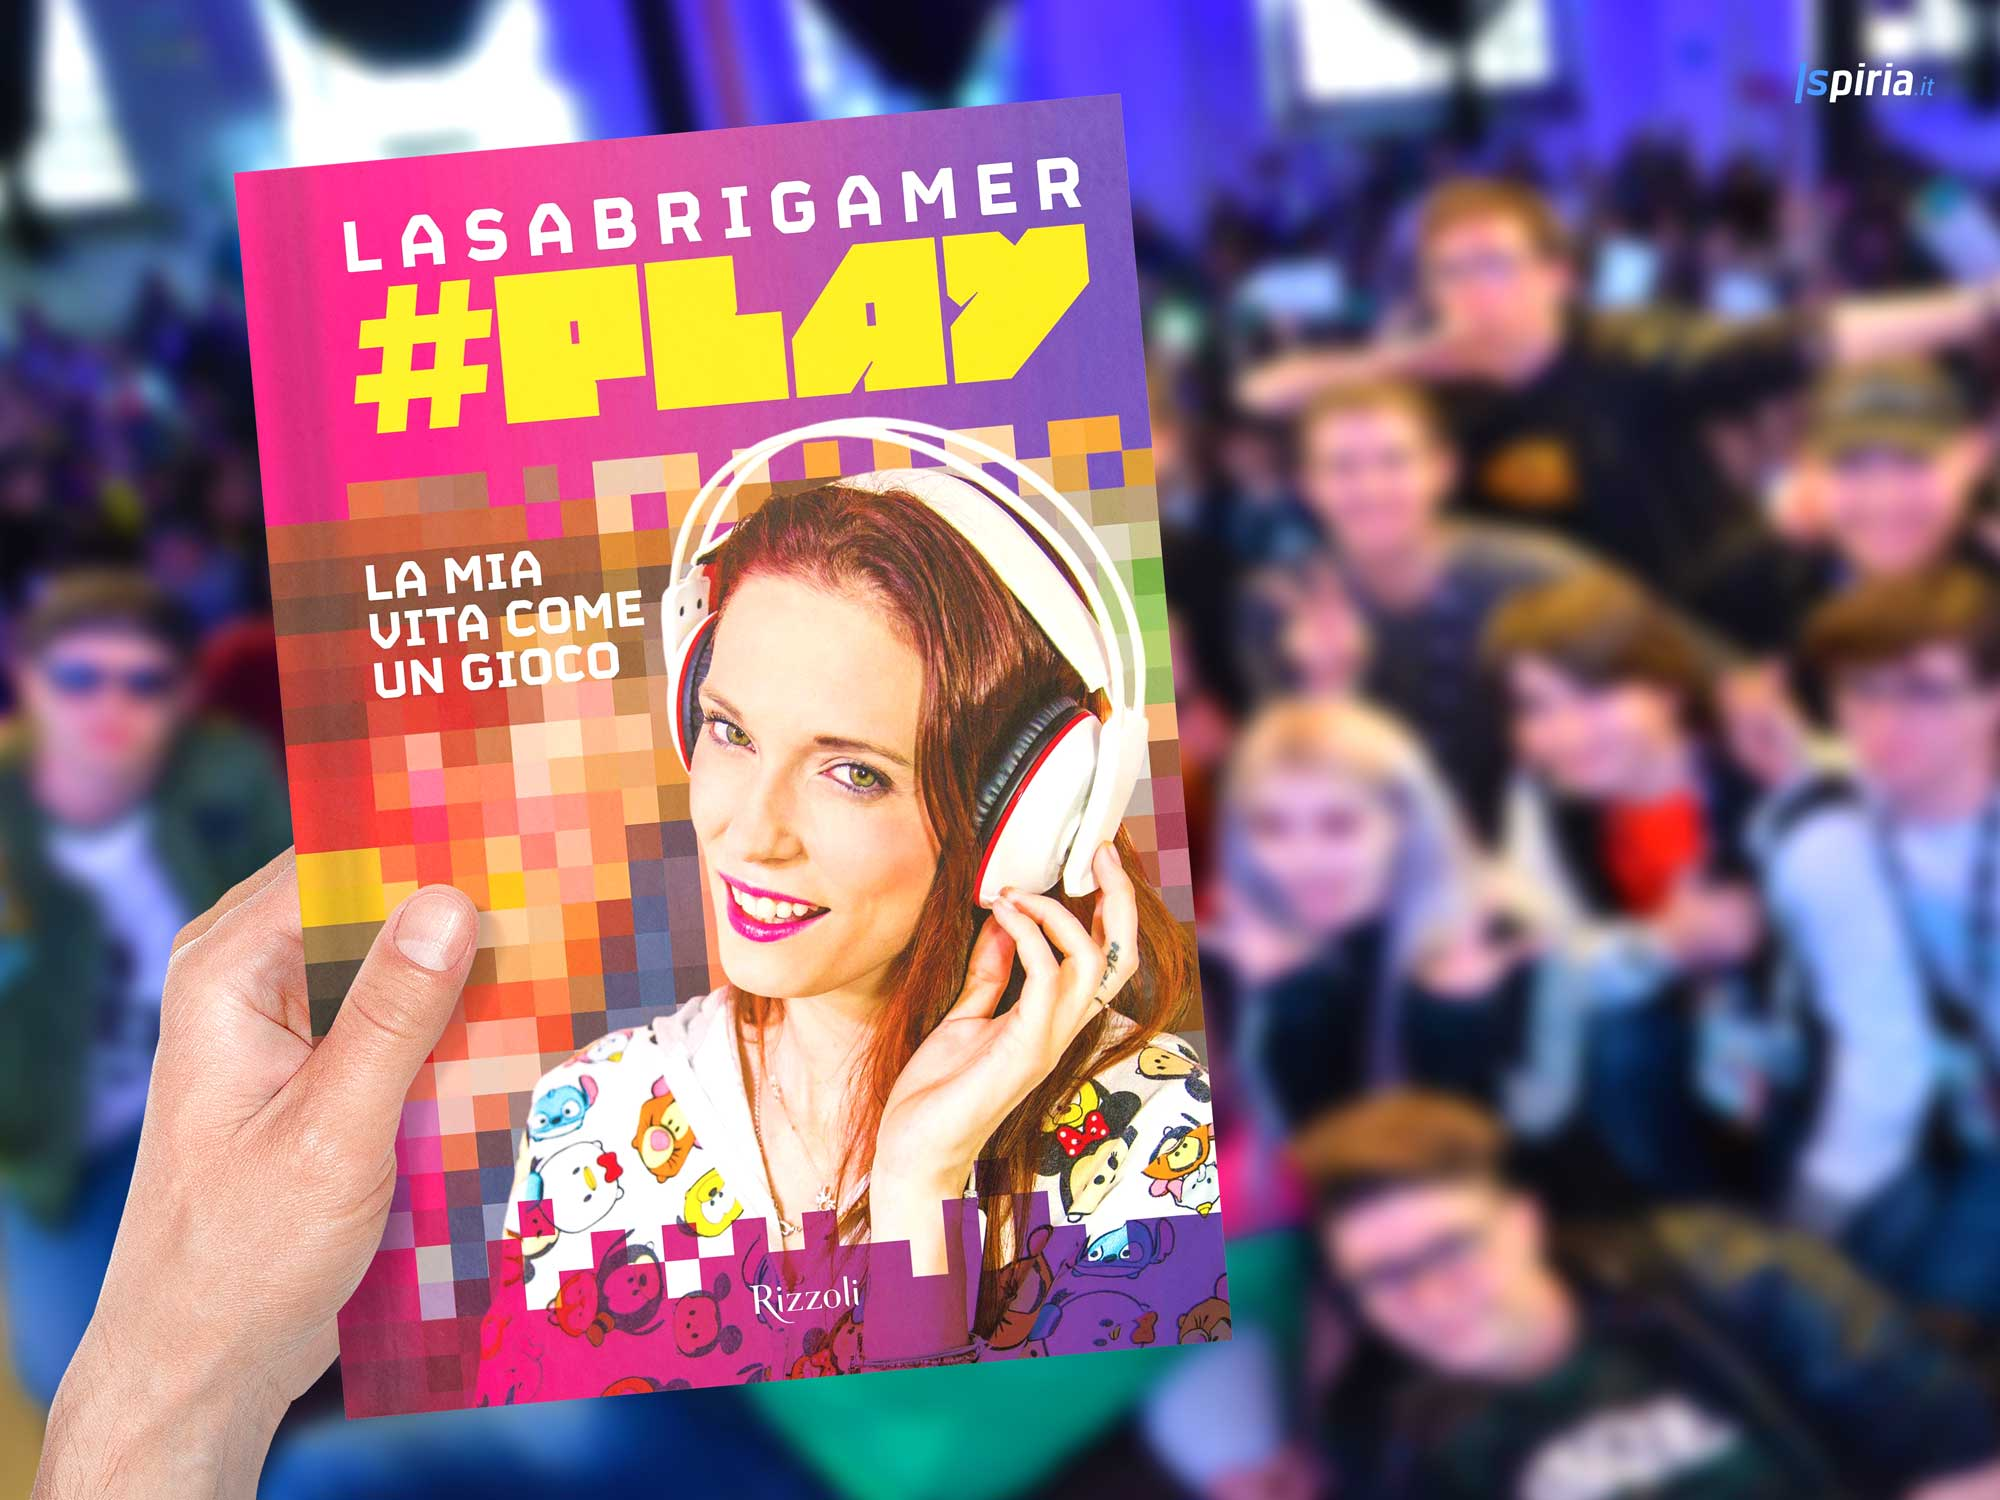 libro-la-sabri-gamer-Youtube-italia